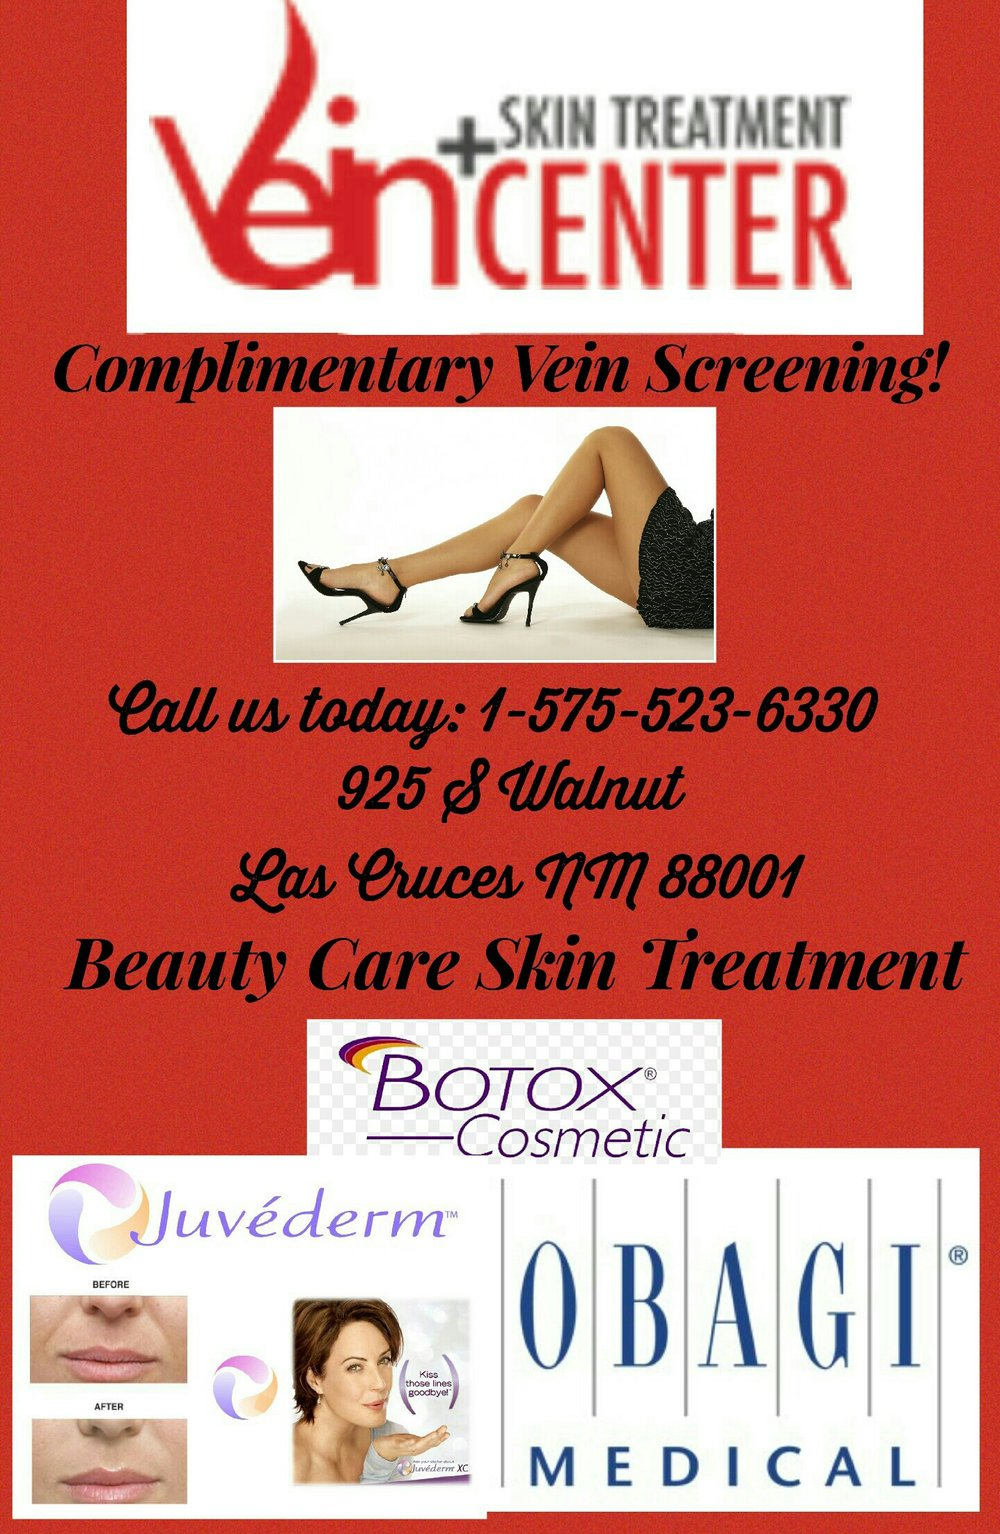 Vein + Skin treatment center in las cruces